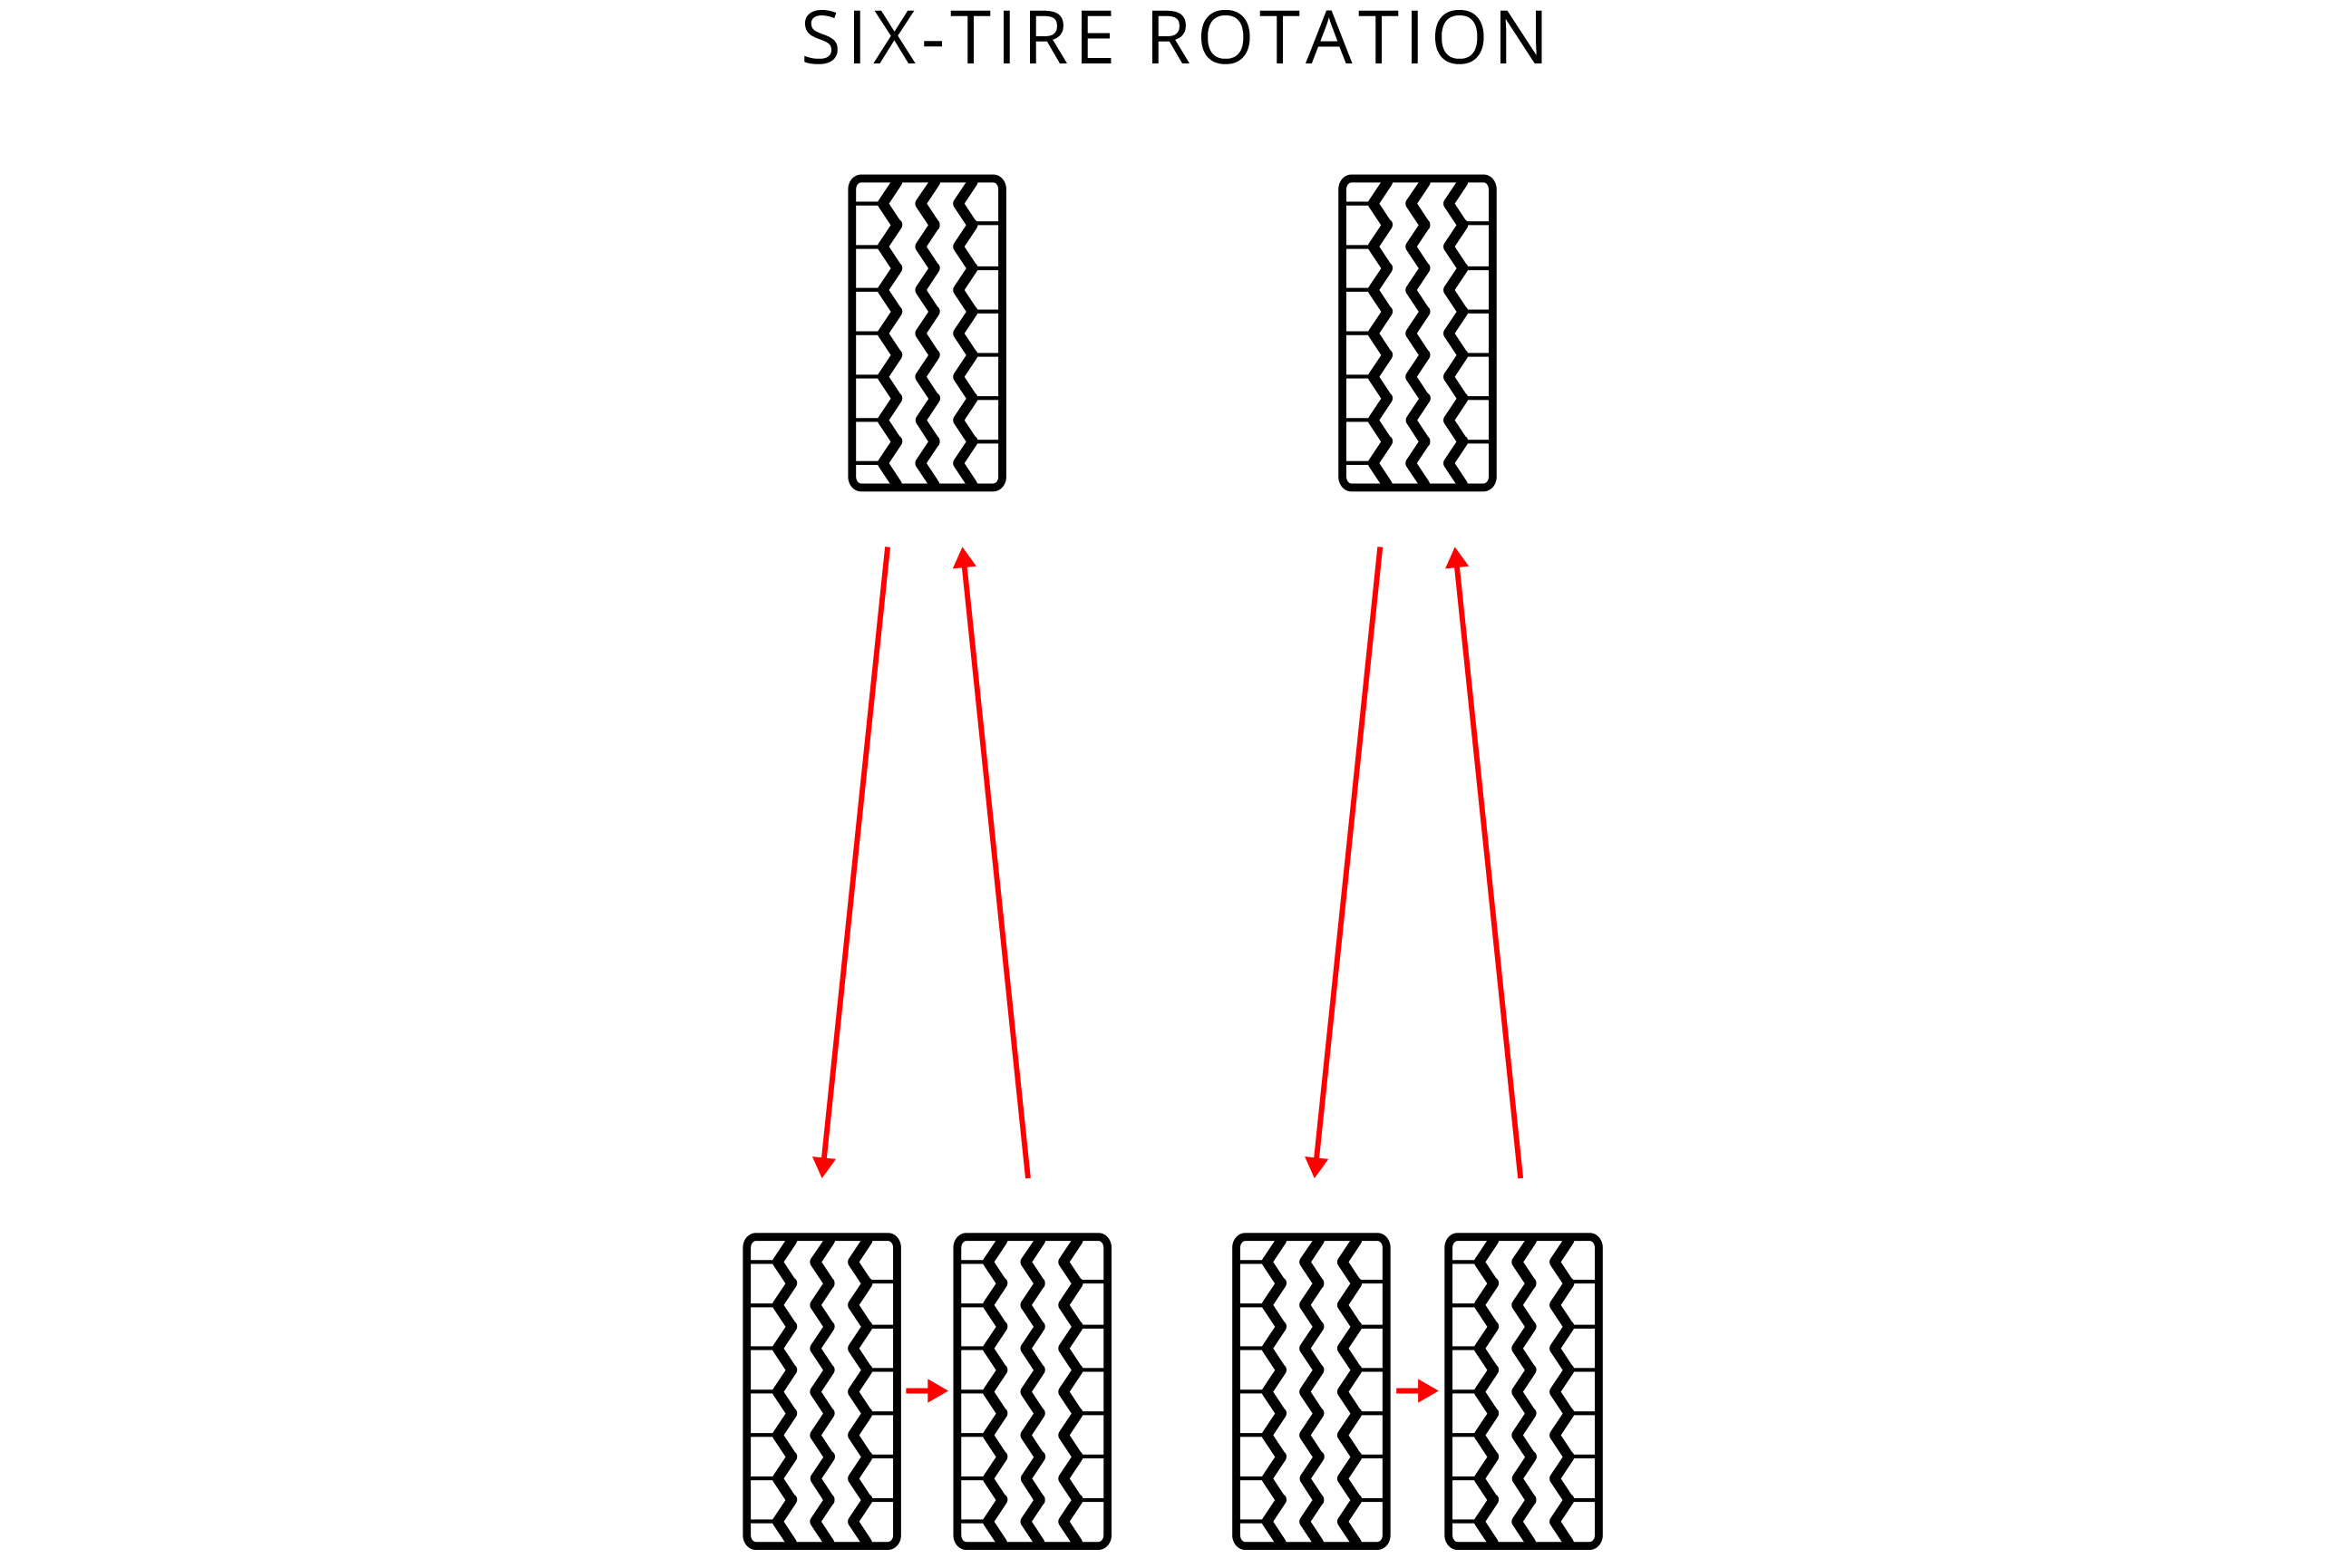 How To Rotate Tires >> Tire Rotation Tire Alignment Balance Rotation Information